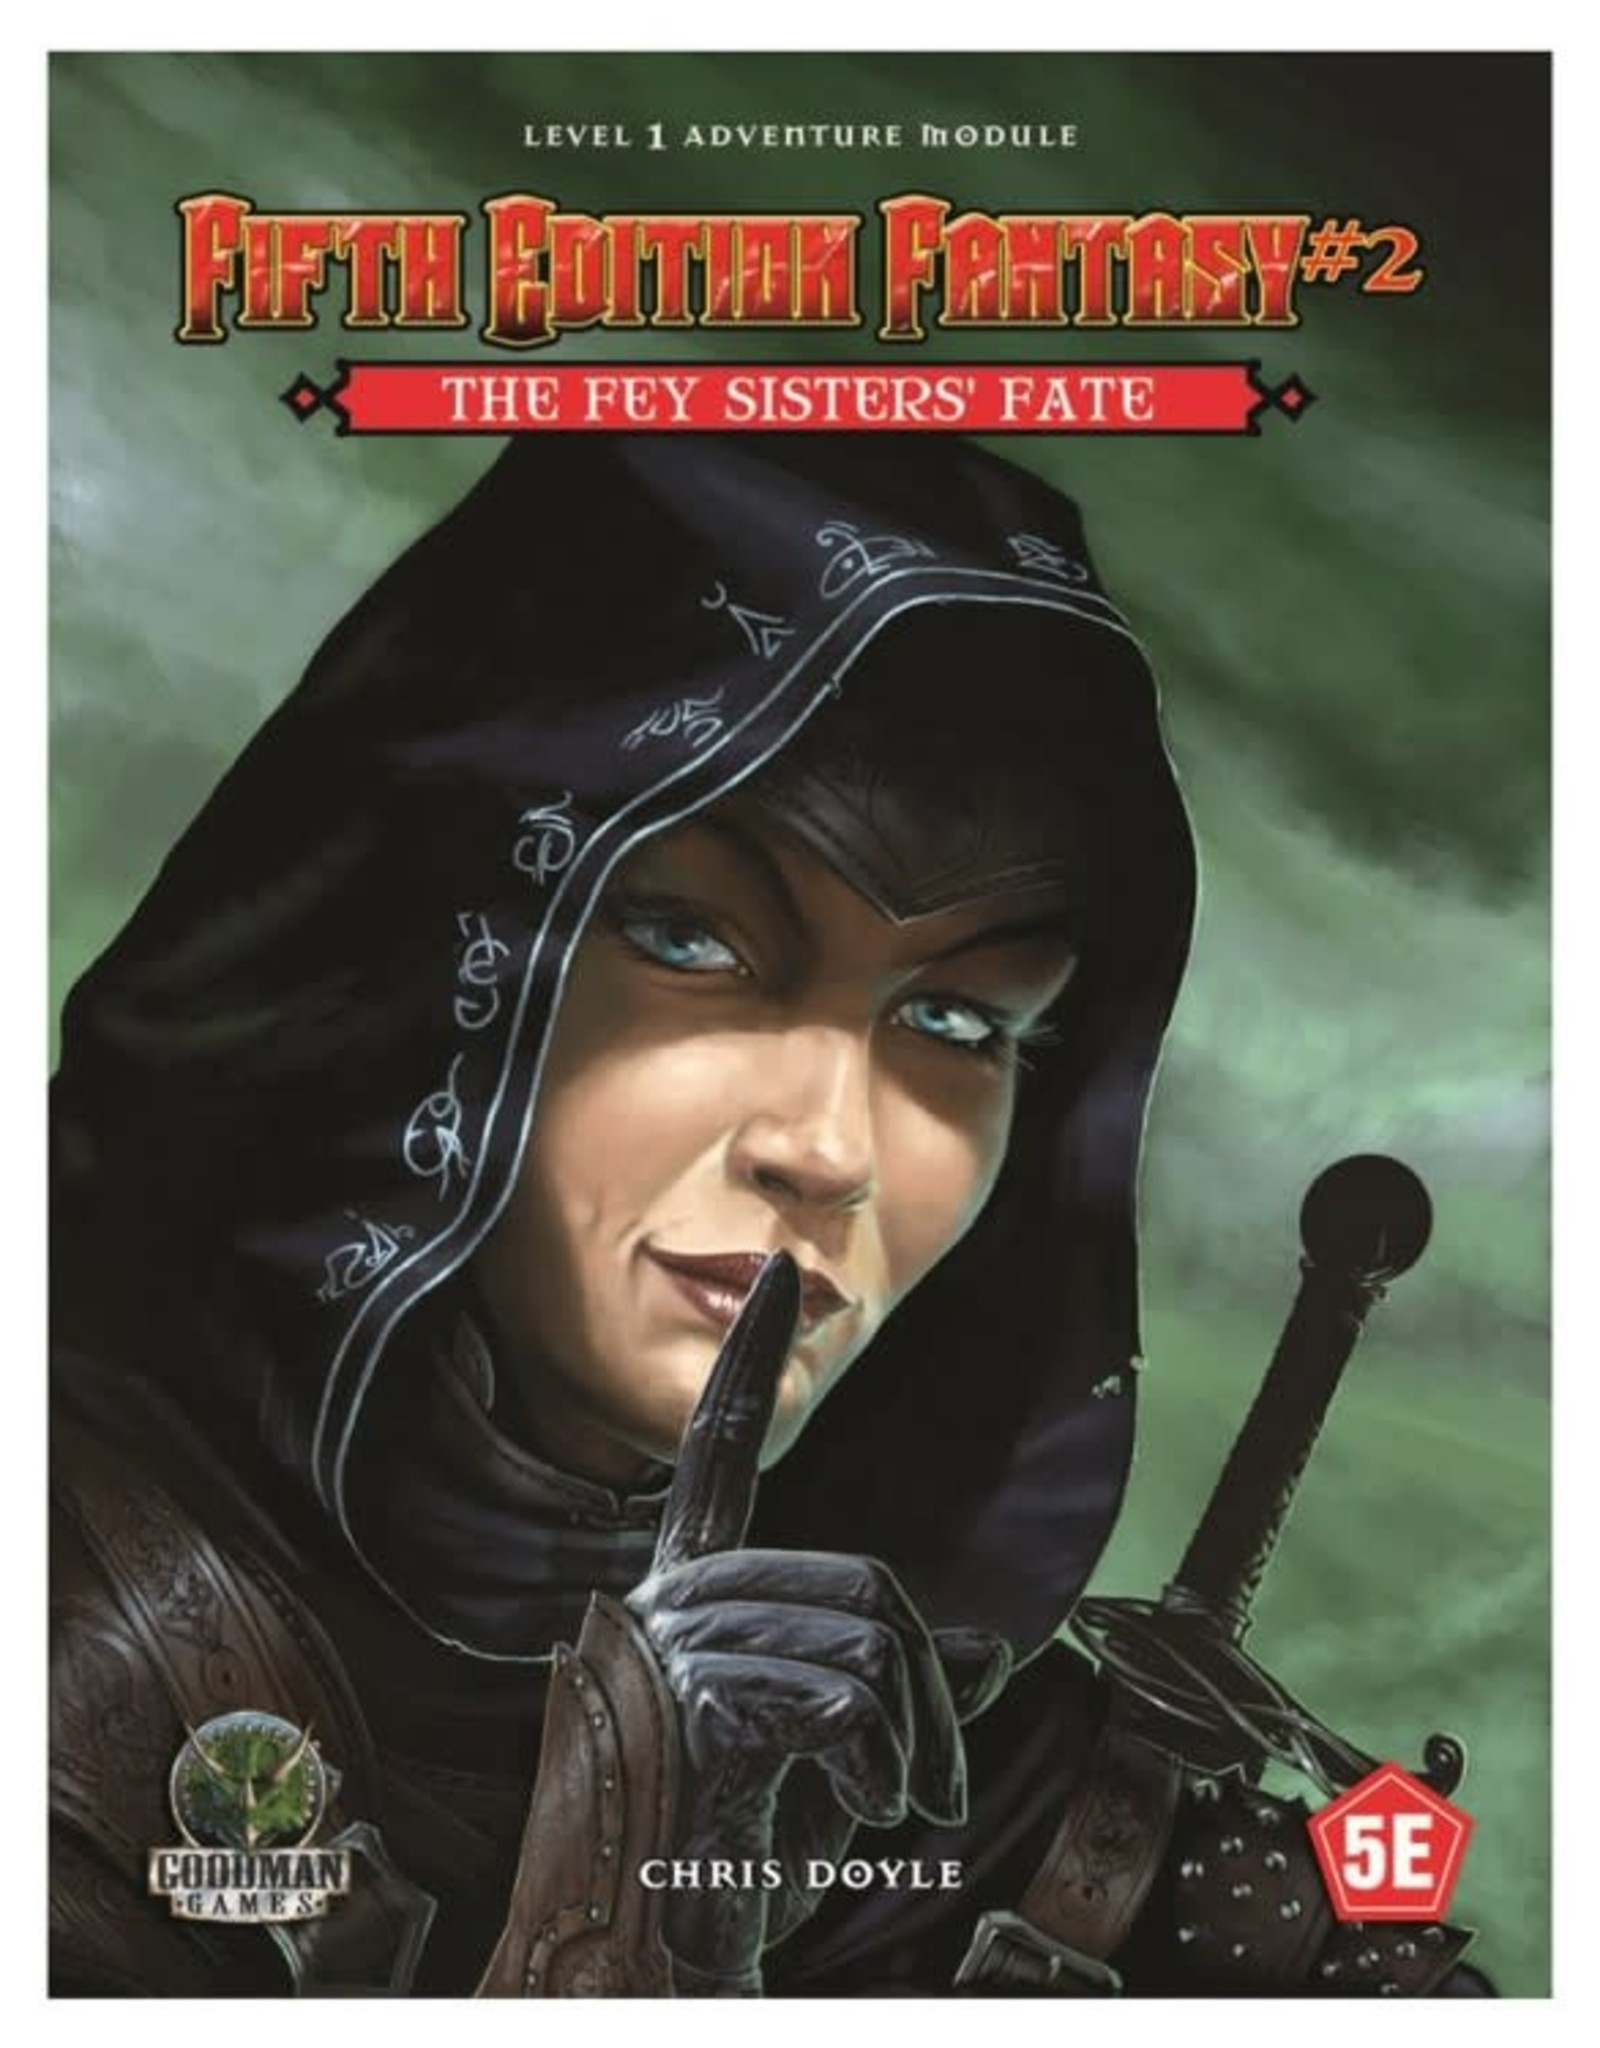 Goodman Games 5e Fantasy: #2 The Fey Sisters' Fate